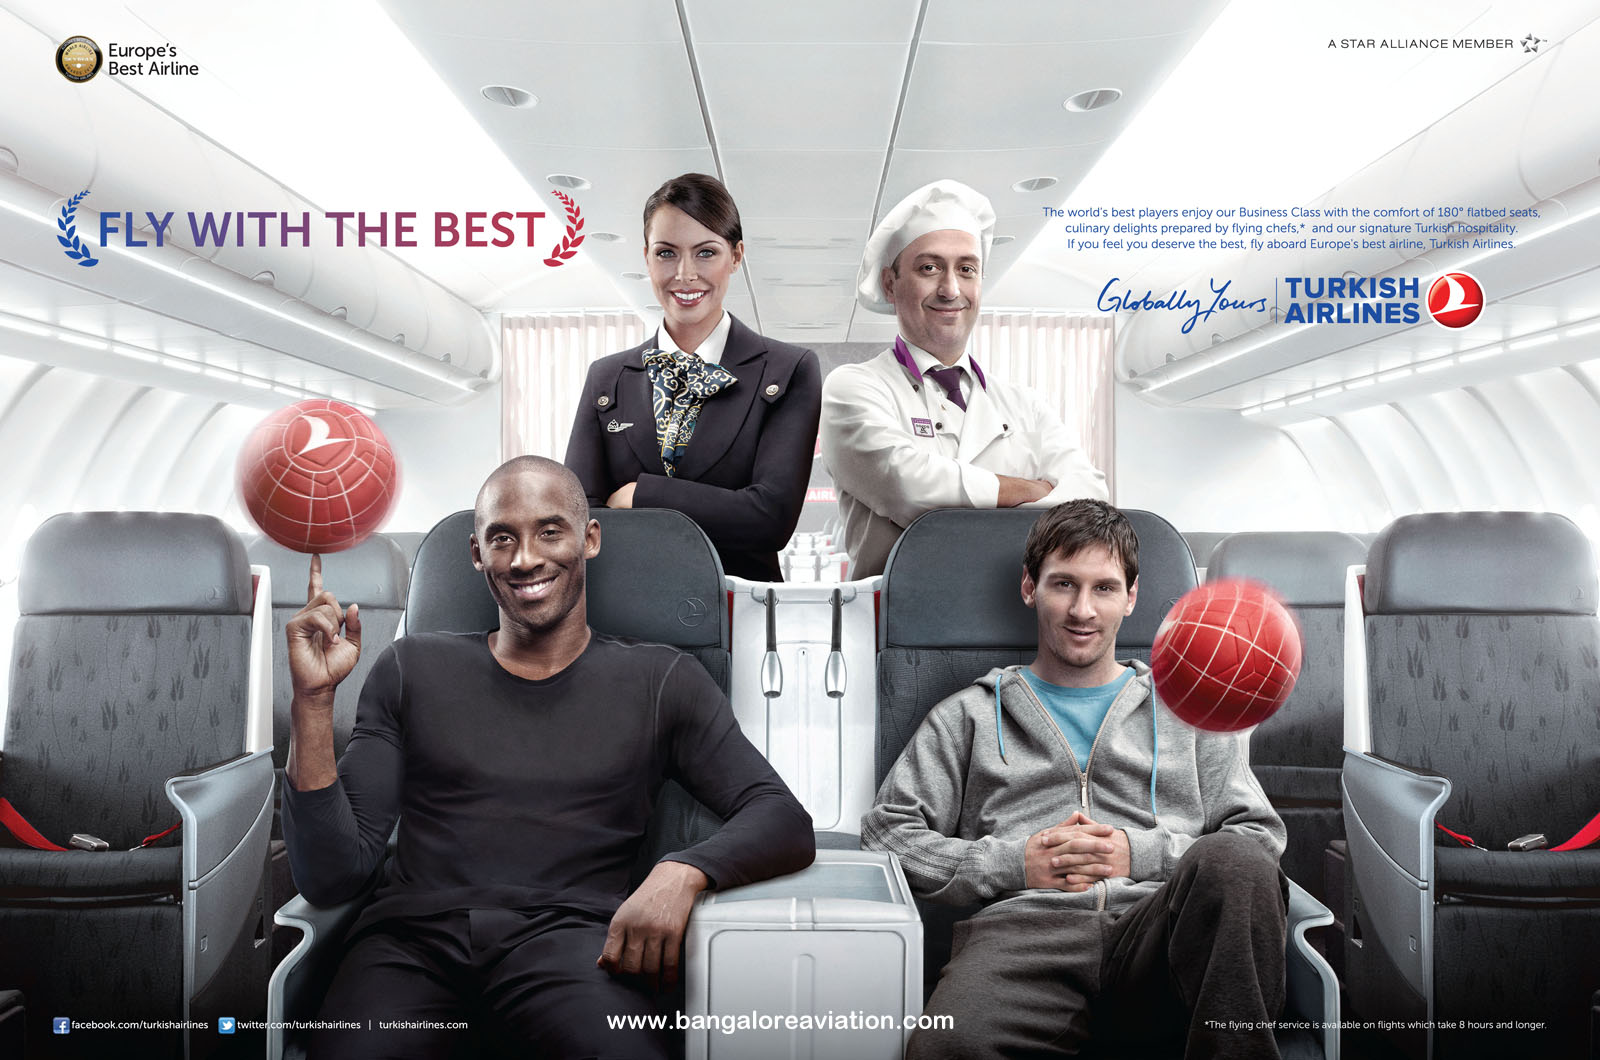 Leo Messi and Kobe Bryant join in an advertisement for Turkish Airlines